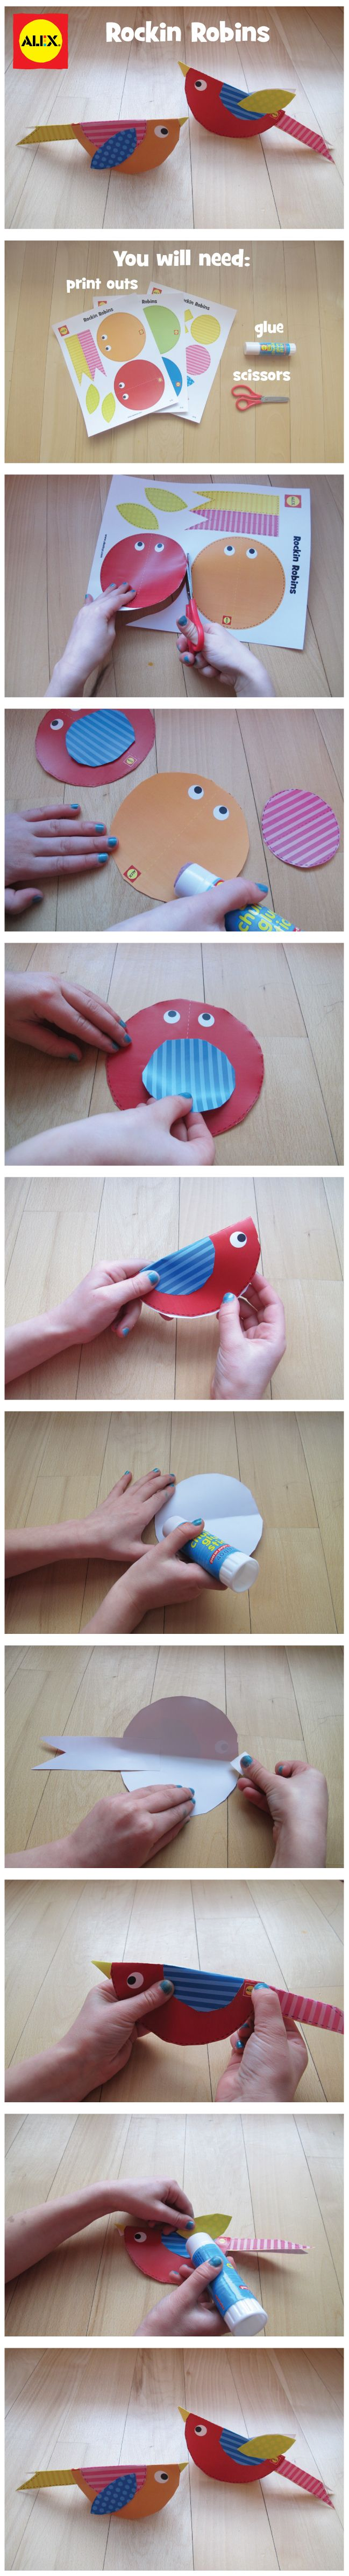 Cut, assemble and paste together these Rocking Robins using our free printable | alextoys.com